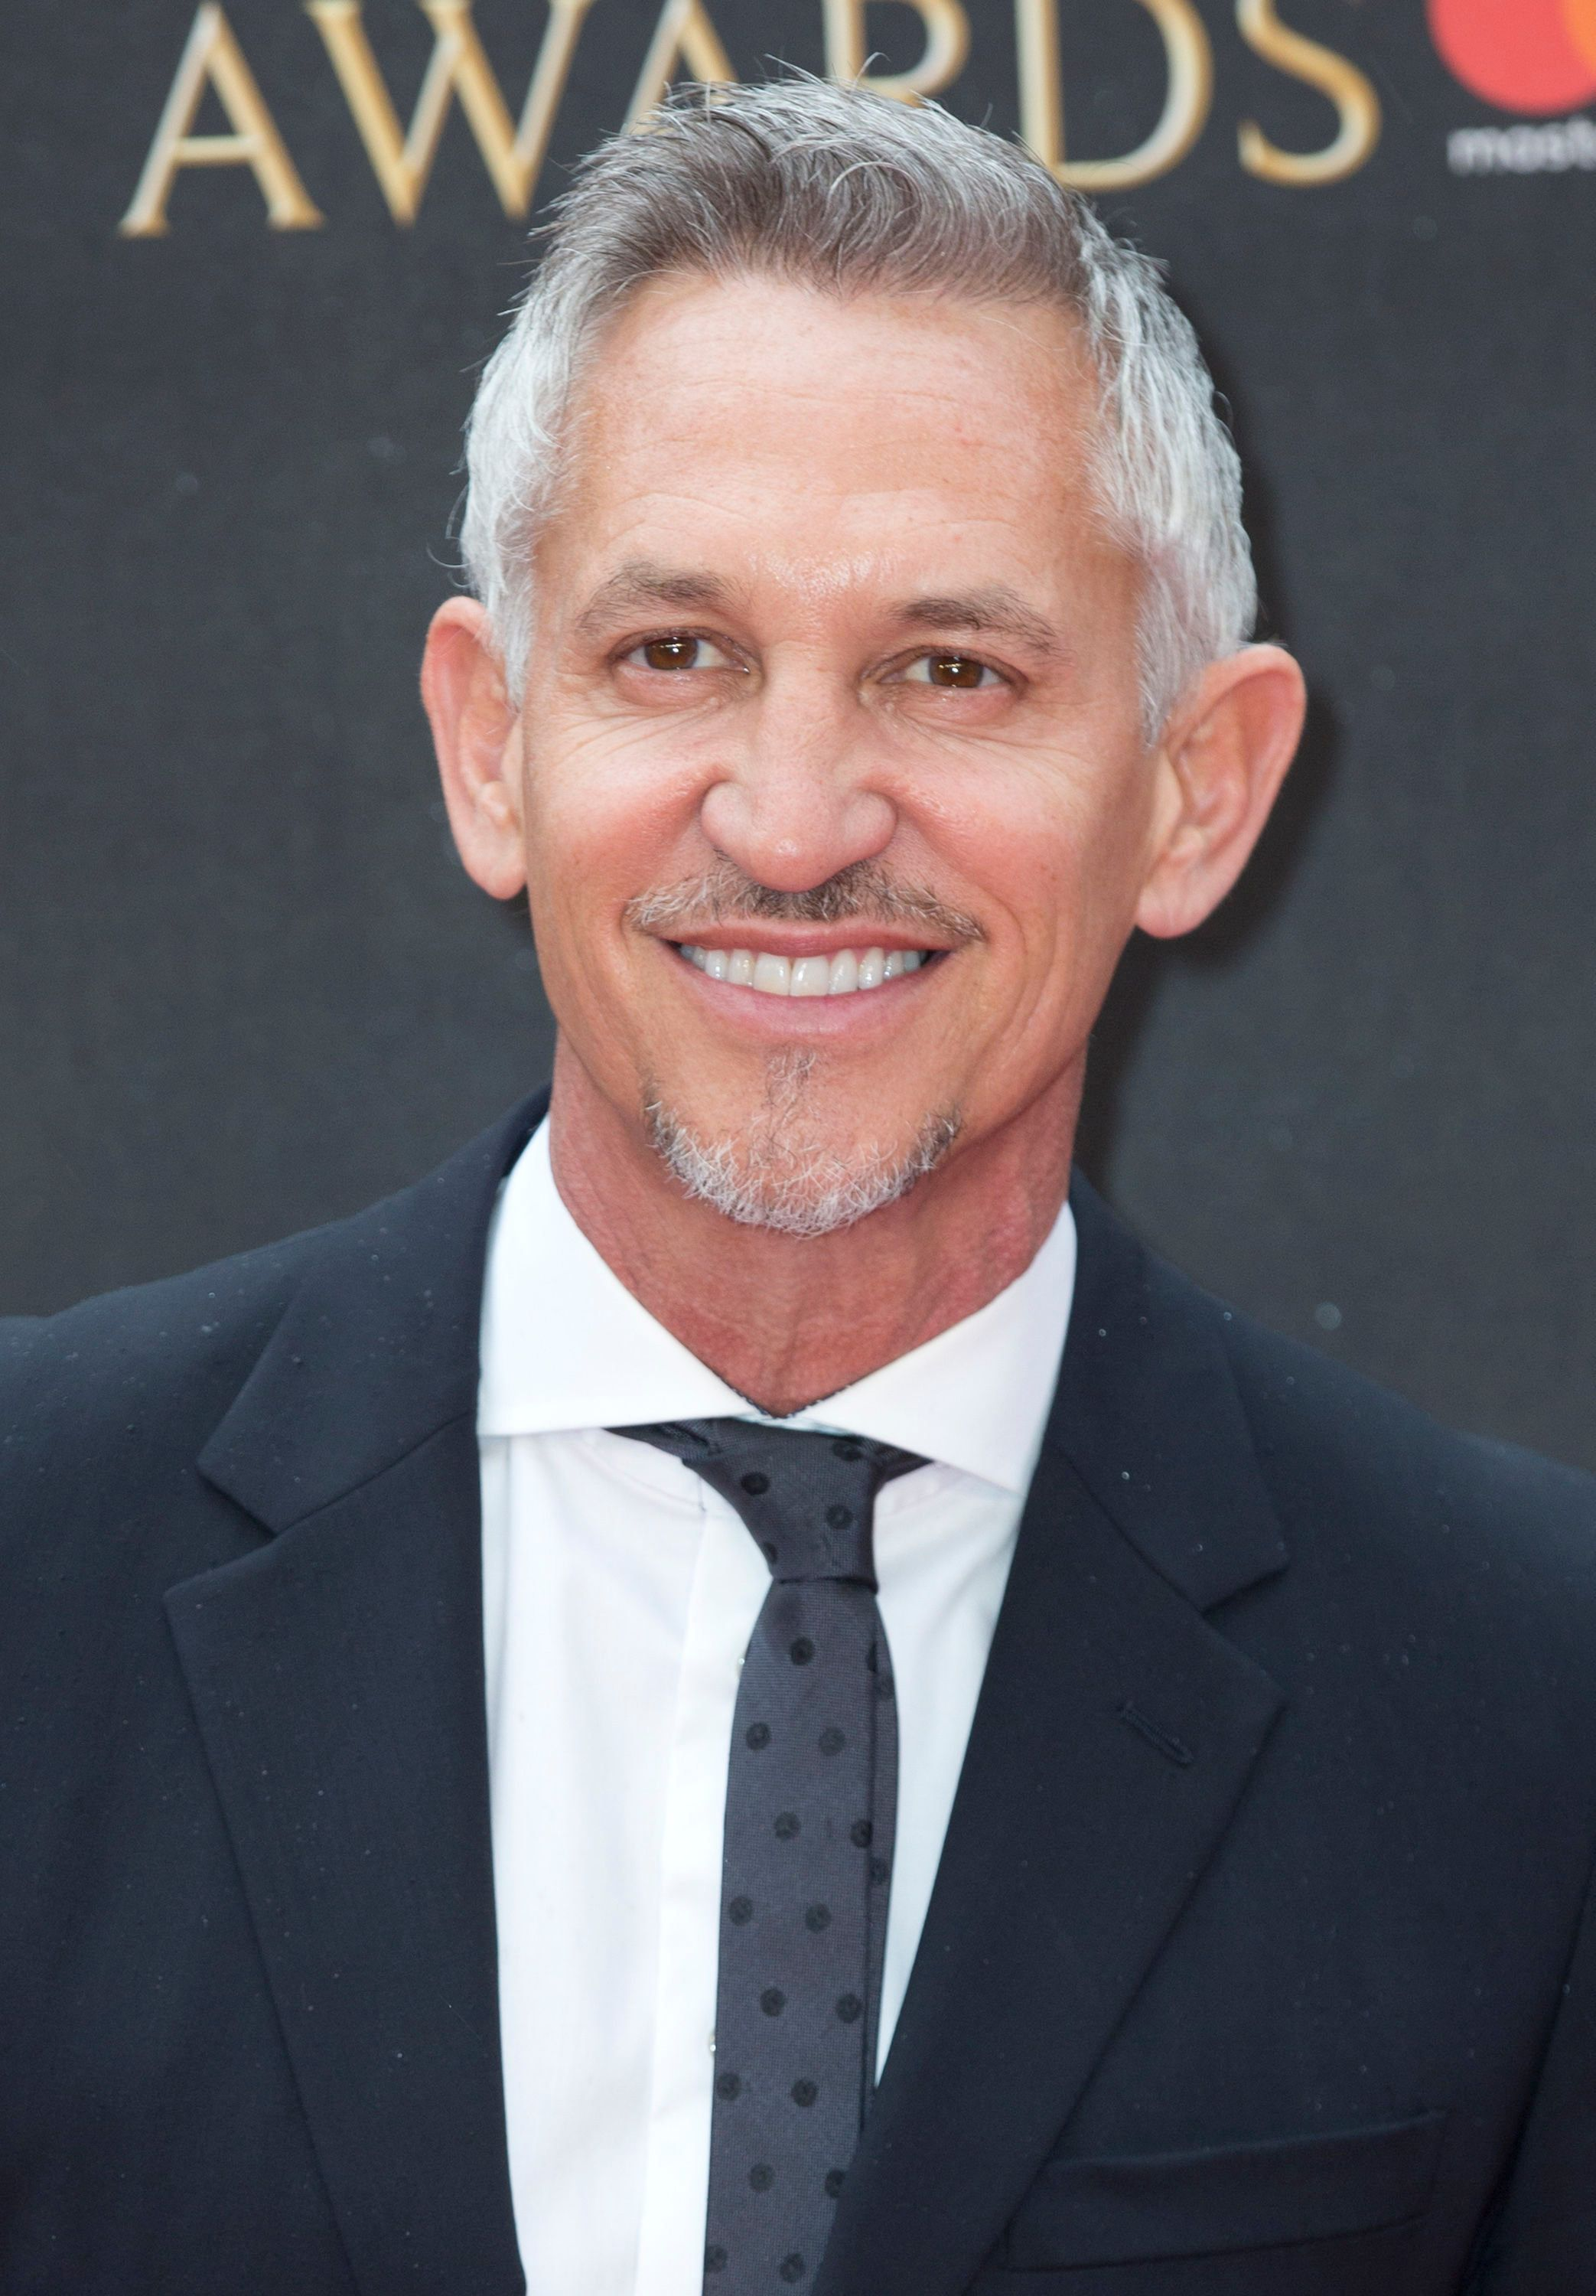 Gary Lineker Tops Male-Dominated List Of BBC's Top Earners In Latest Pay Report